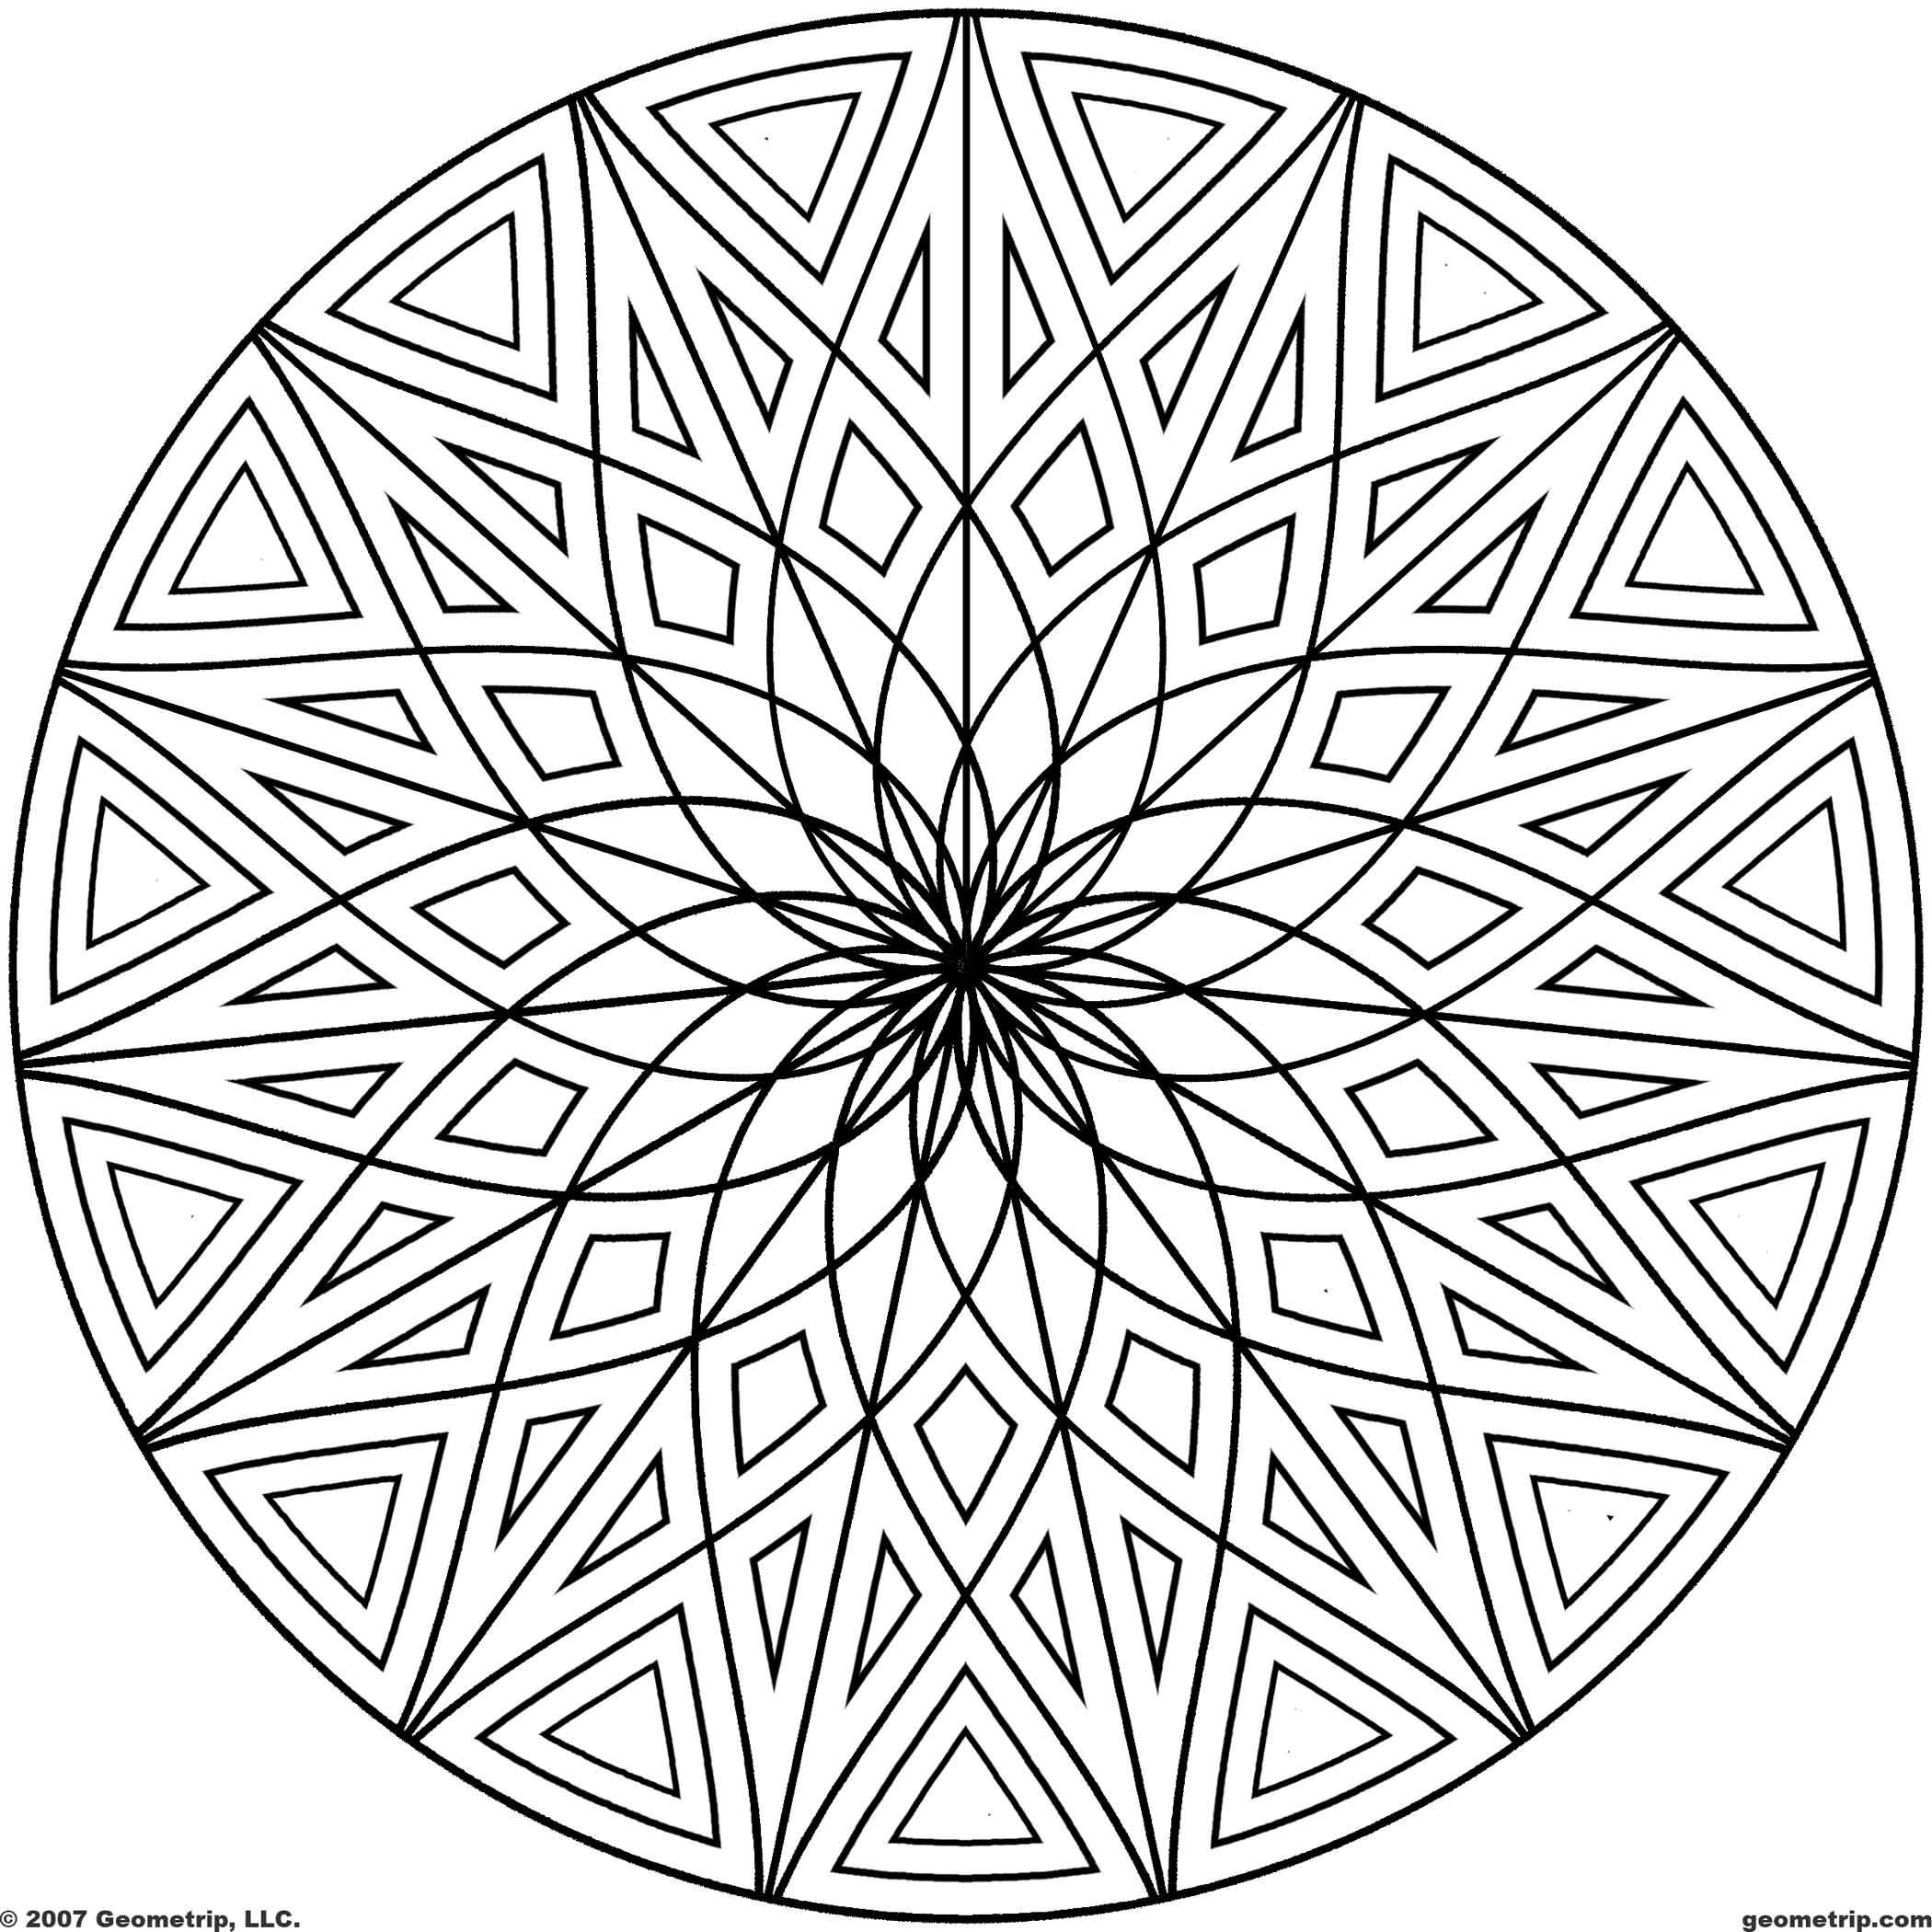 coloring pages of cool designs download pdf jpg - Cool Coloring Pages To Print For Free